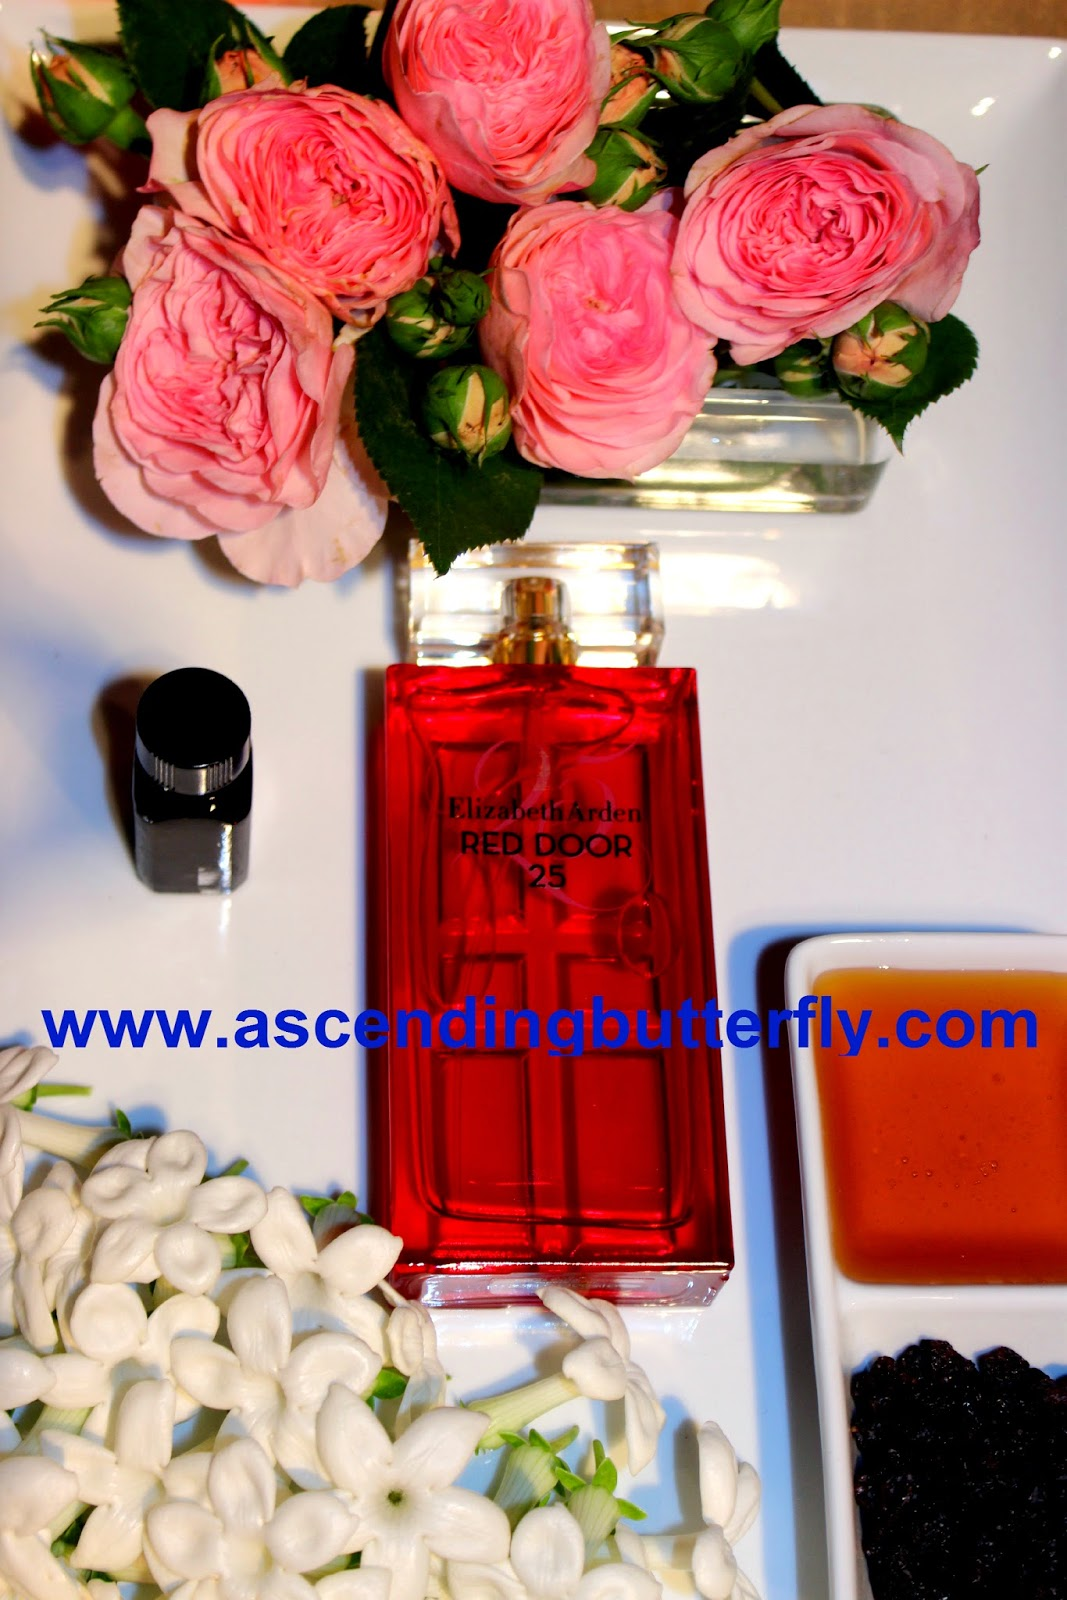 Celebrate the Season Elizabeth Arden Red Door 25 Perfume #CelebrateInStyle, Fragrances, Scents